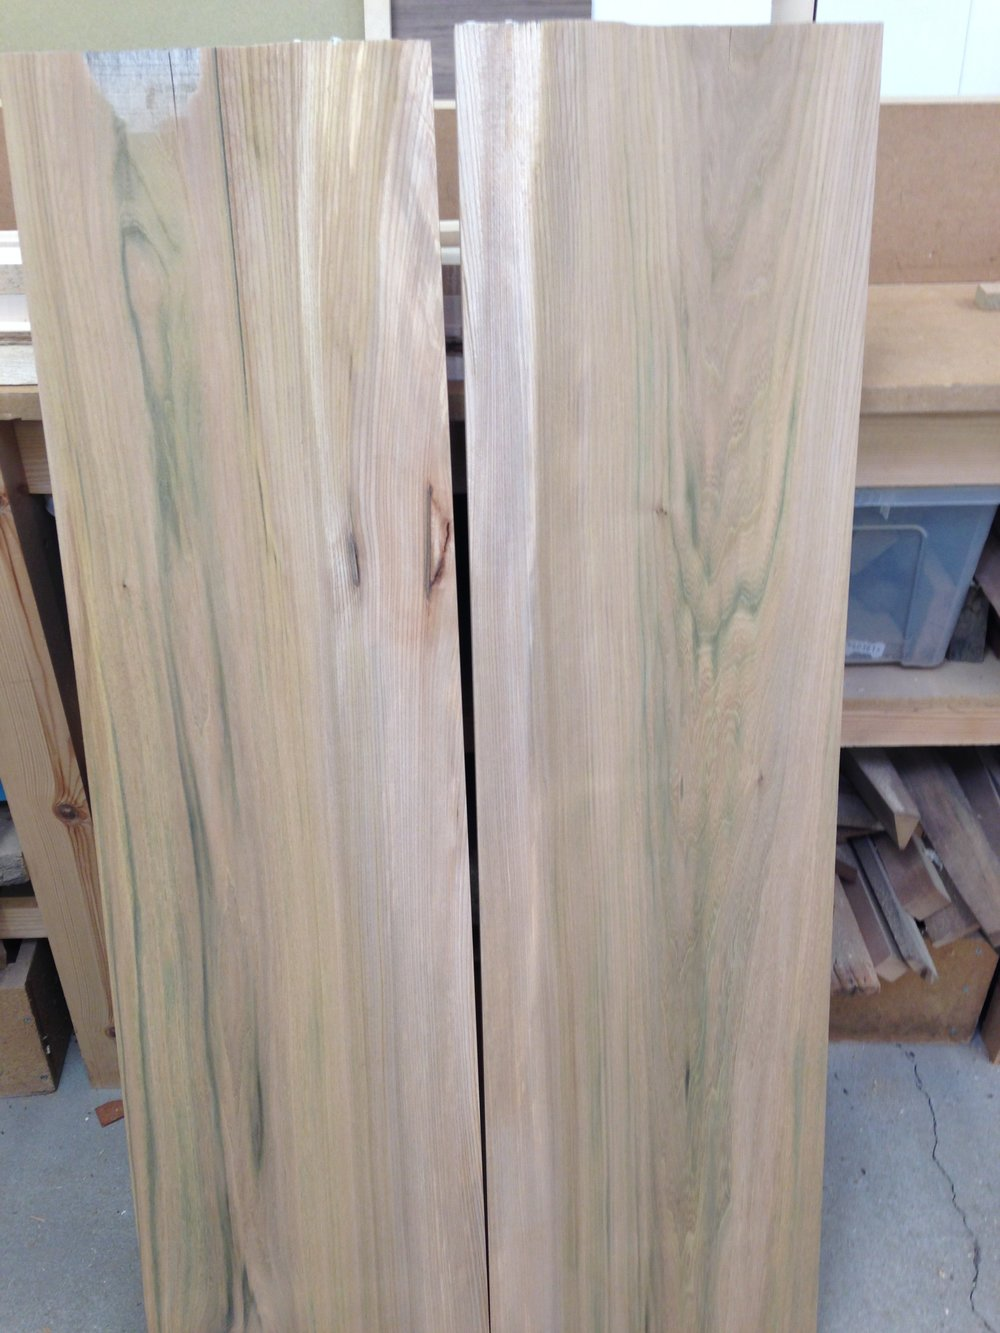 Elm boards cut and matched for drawer carcass